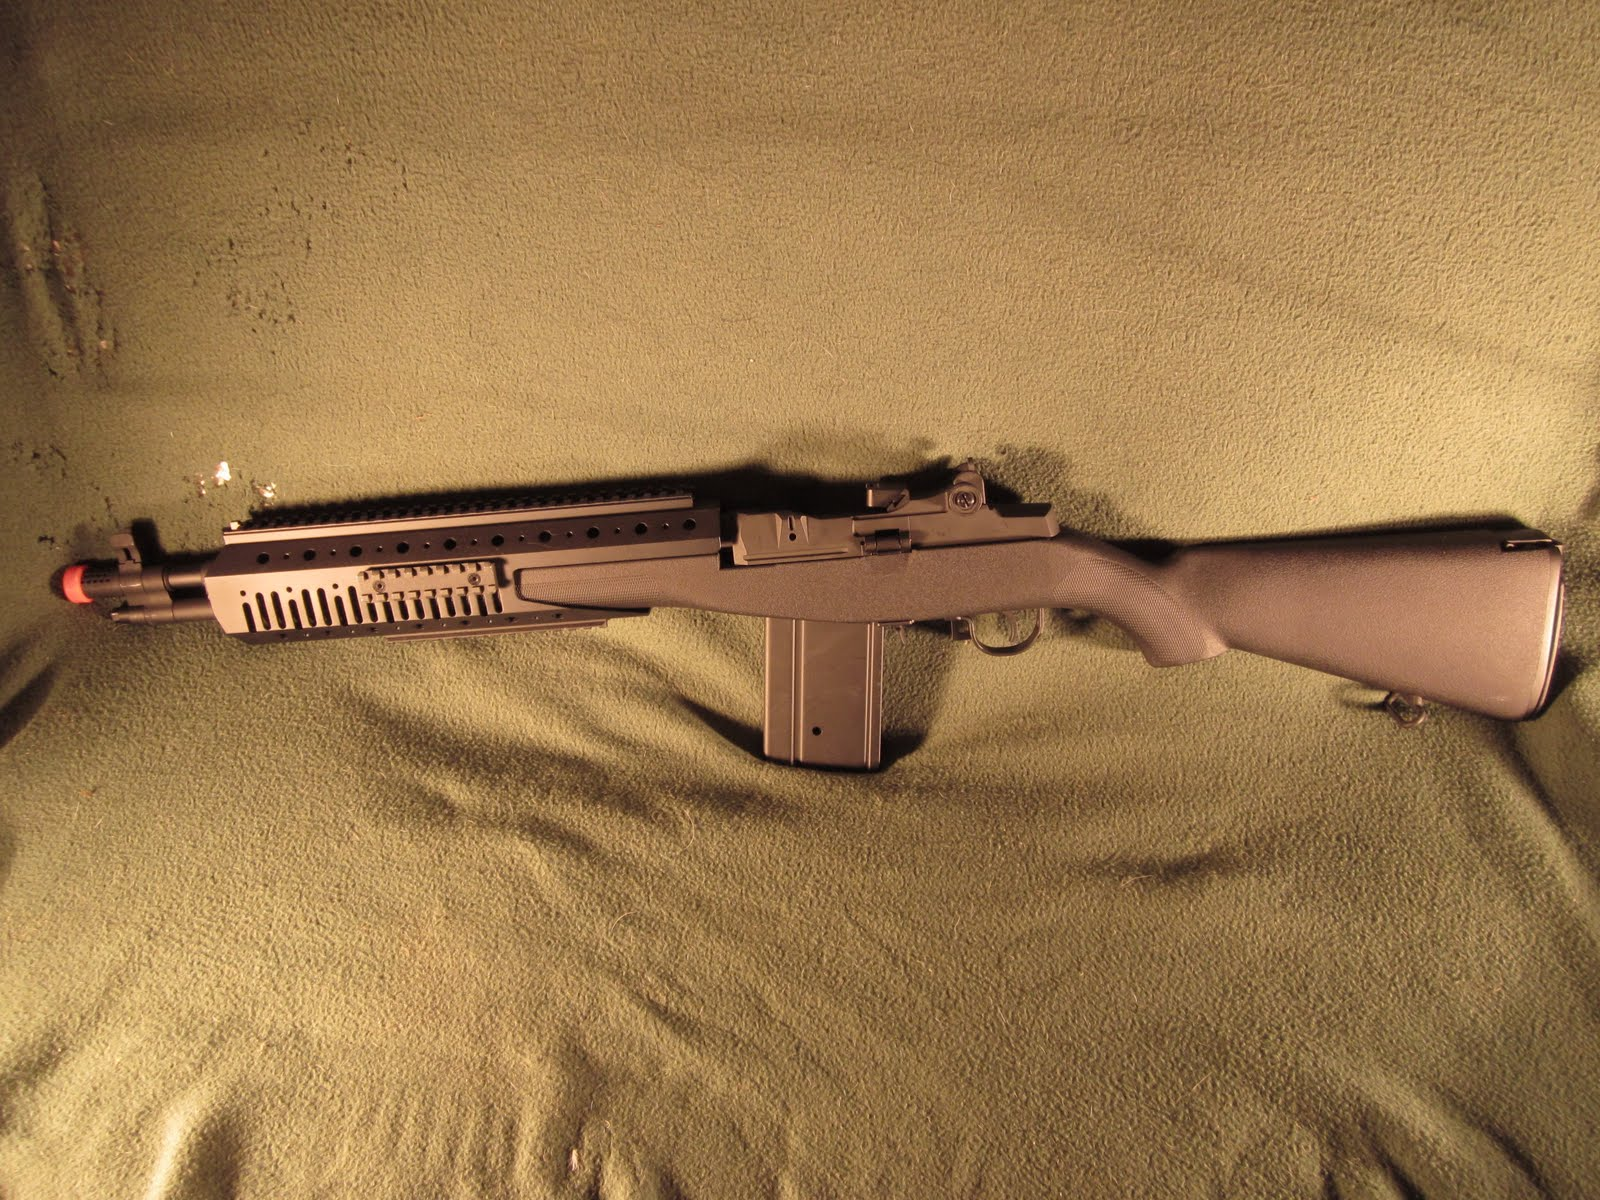 CQB Radio: New review of rail system from M14 SOCOMs